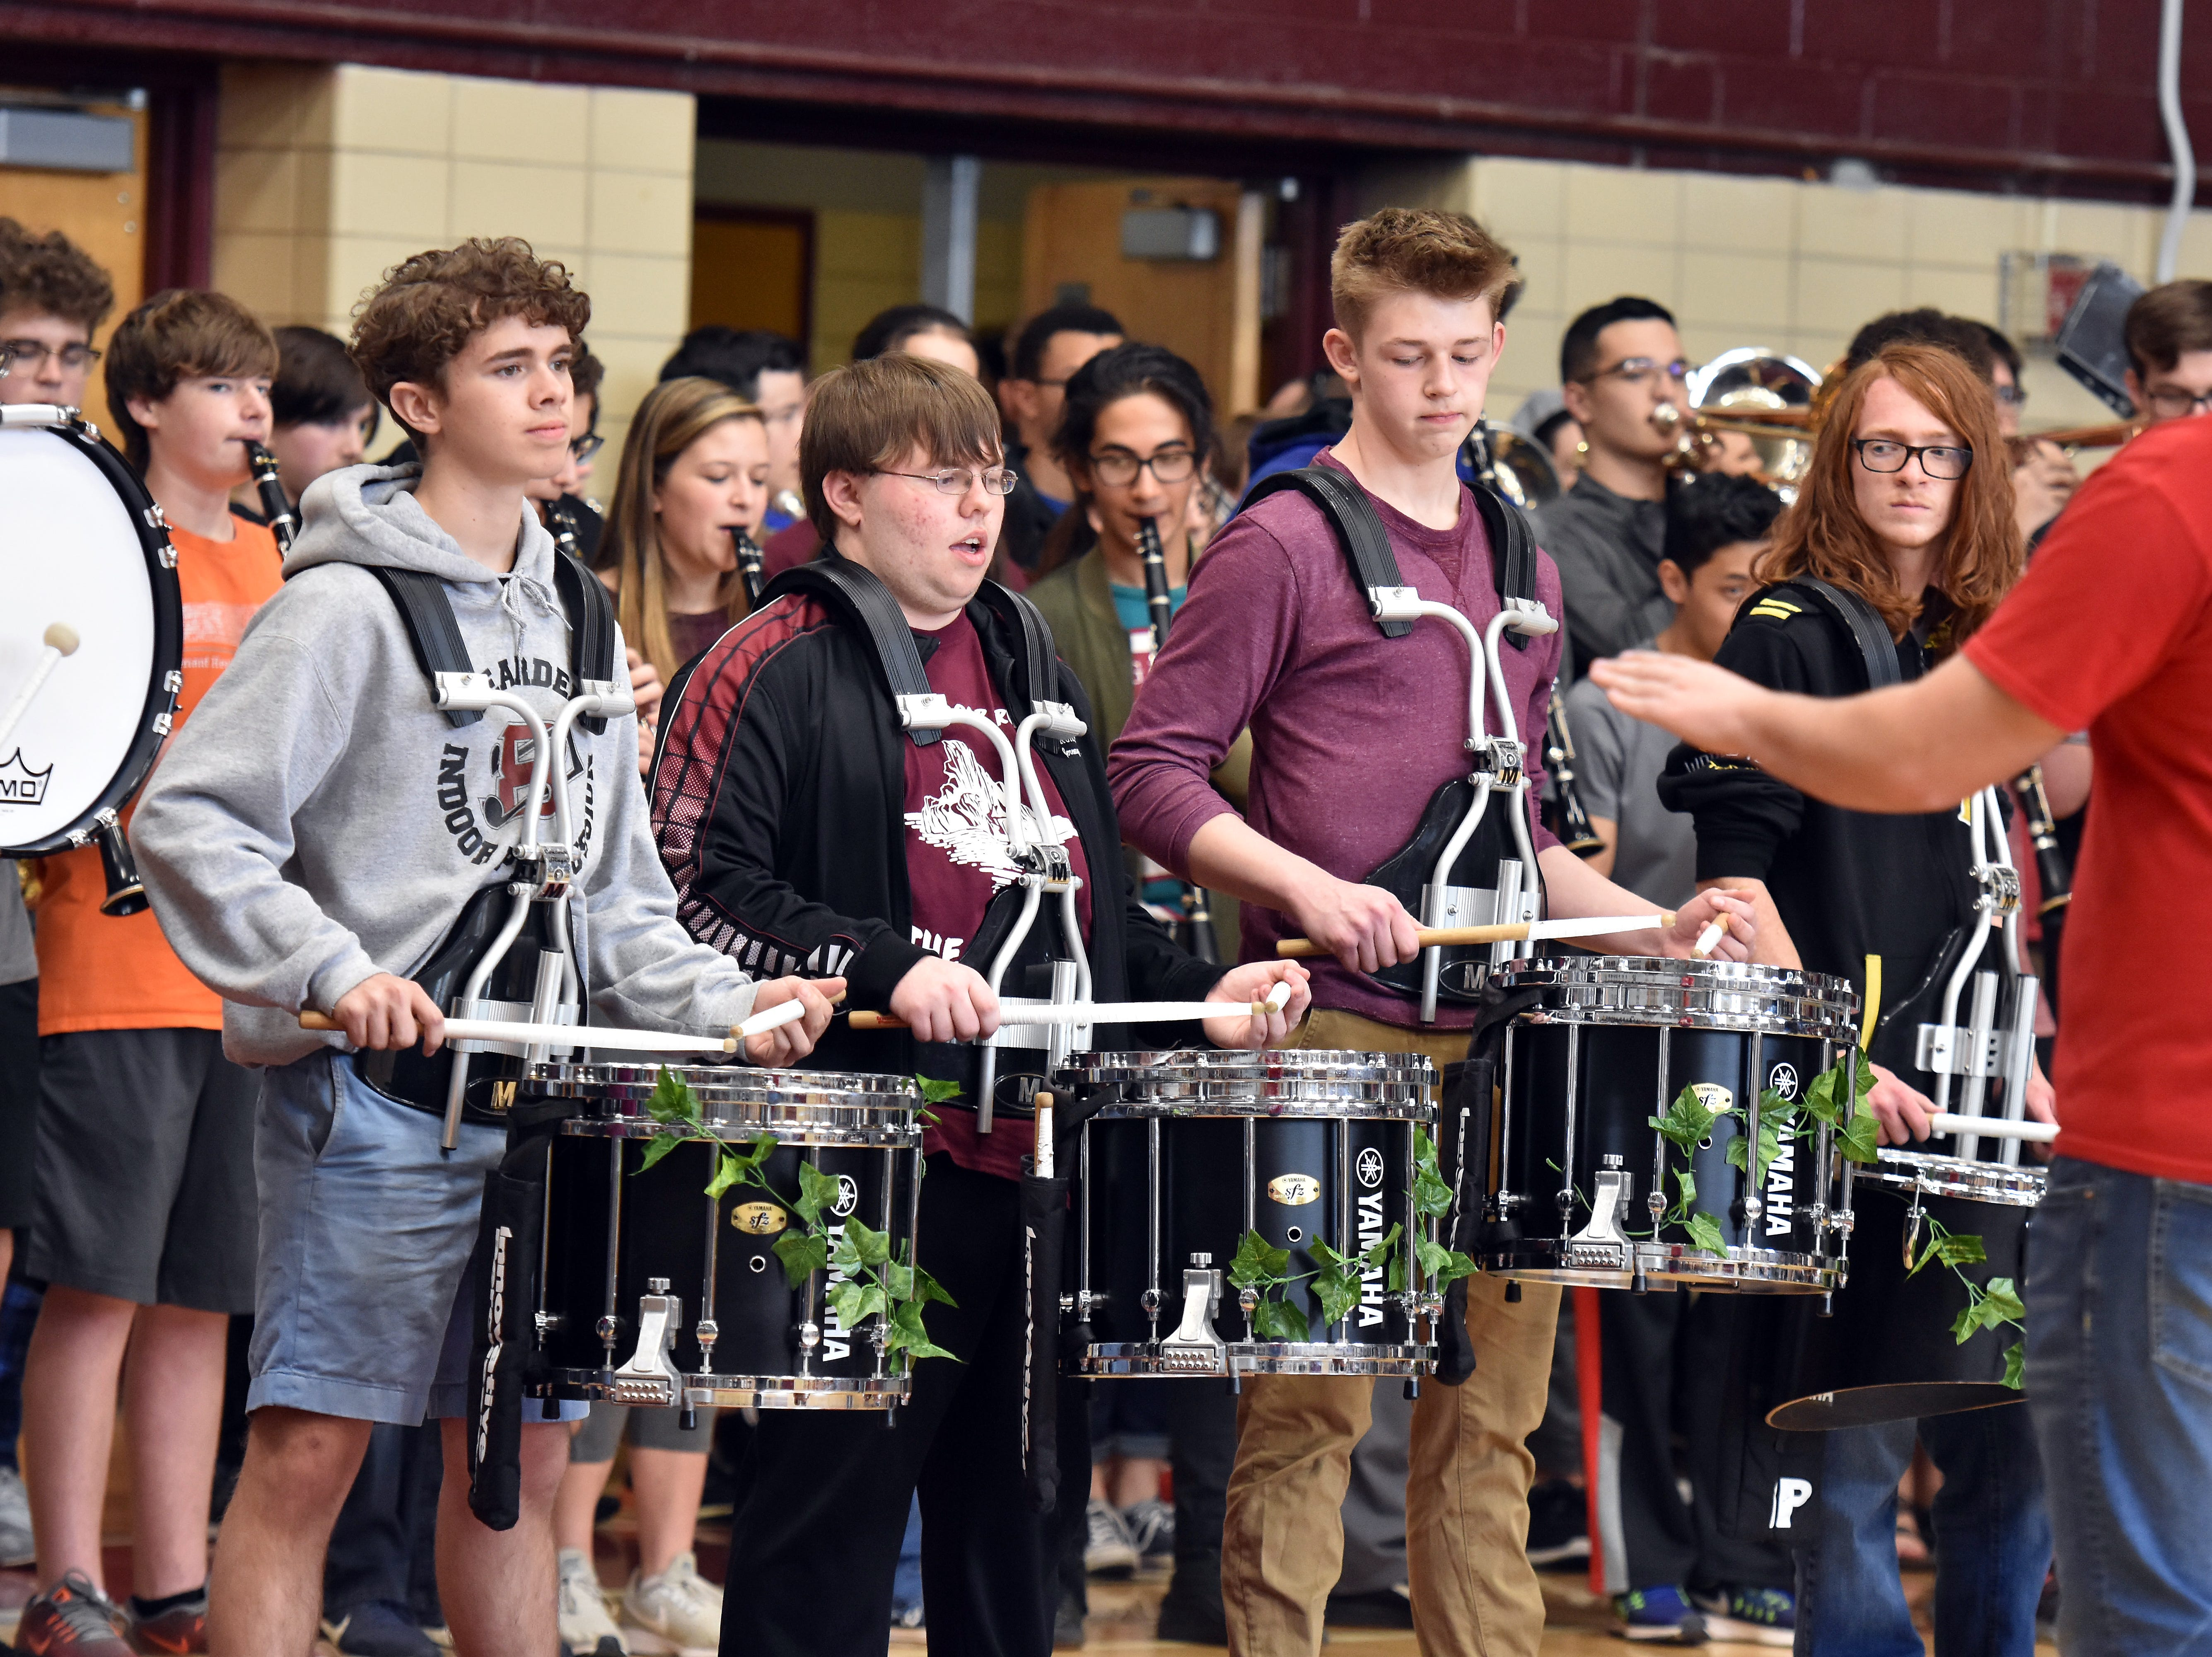 Bearden High band members play the school fight song during the pep rally to honor the state championship basketball team on Friday, March 29.